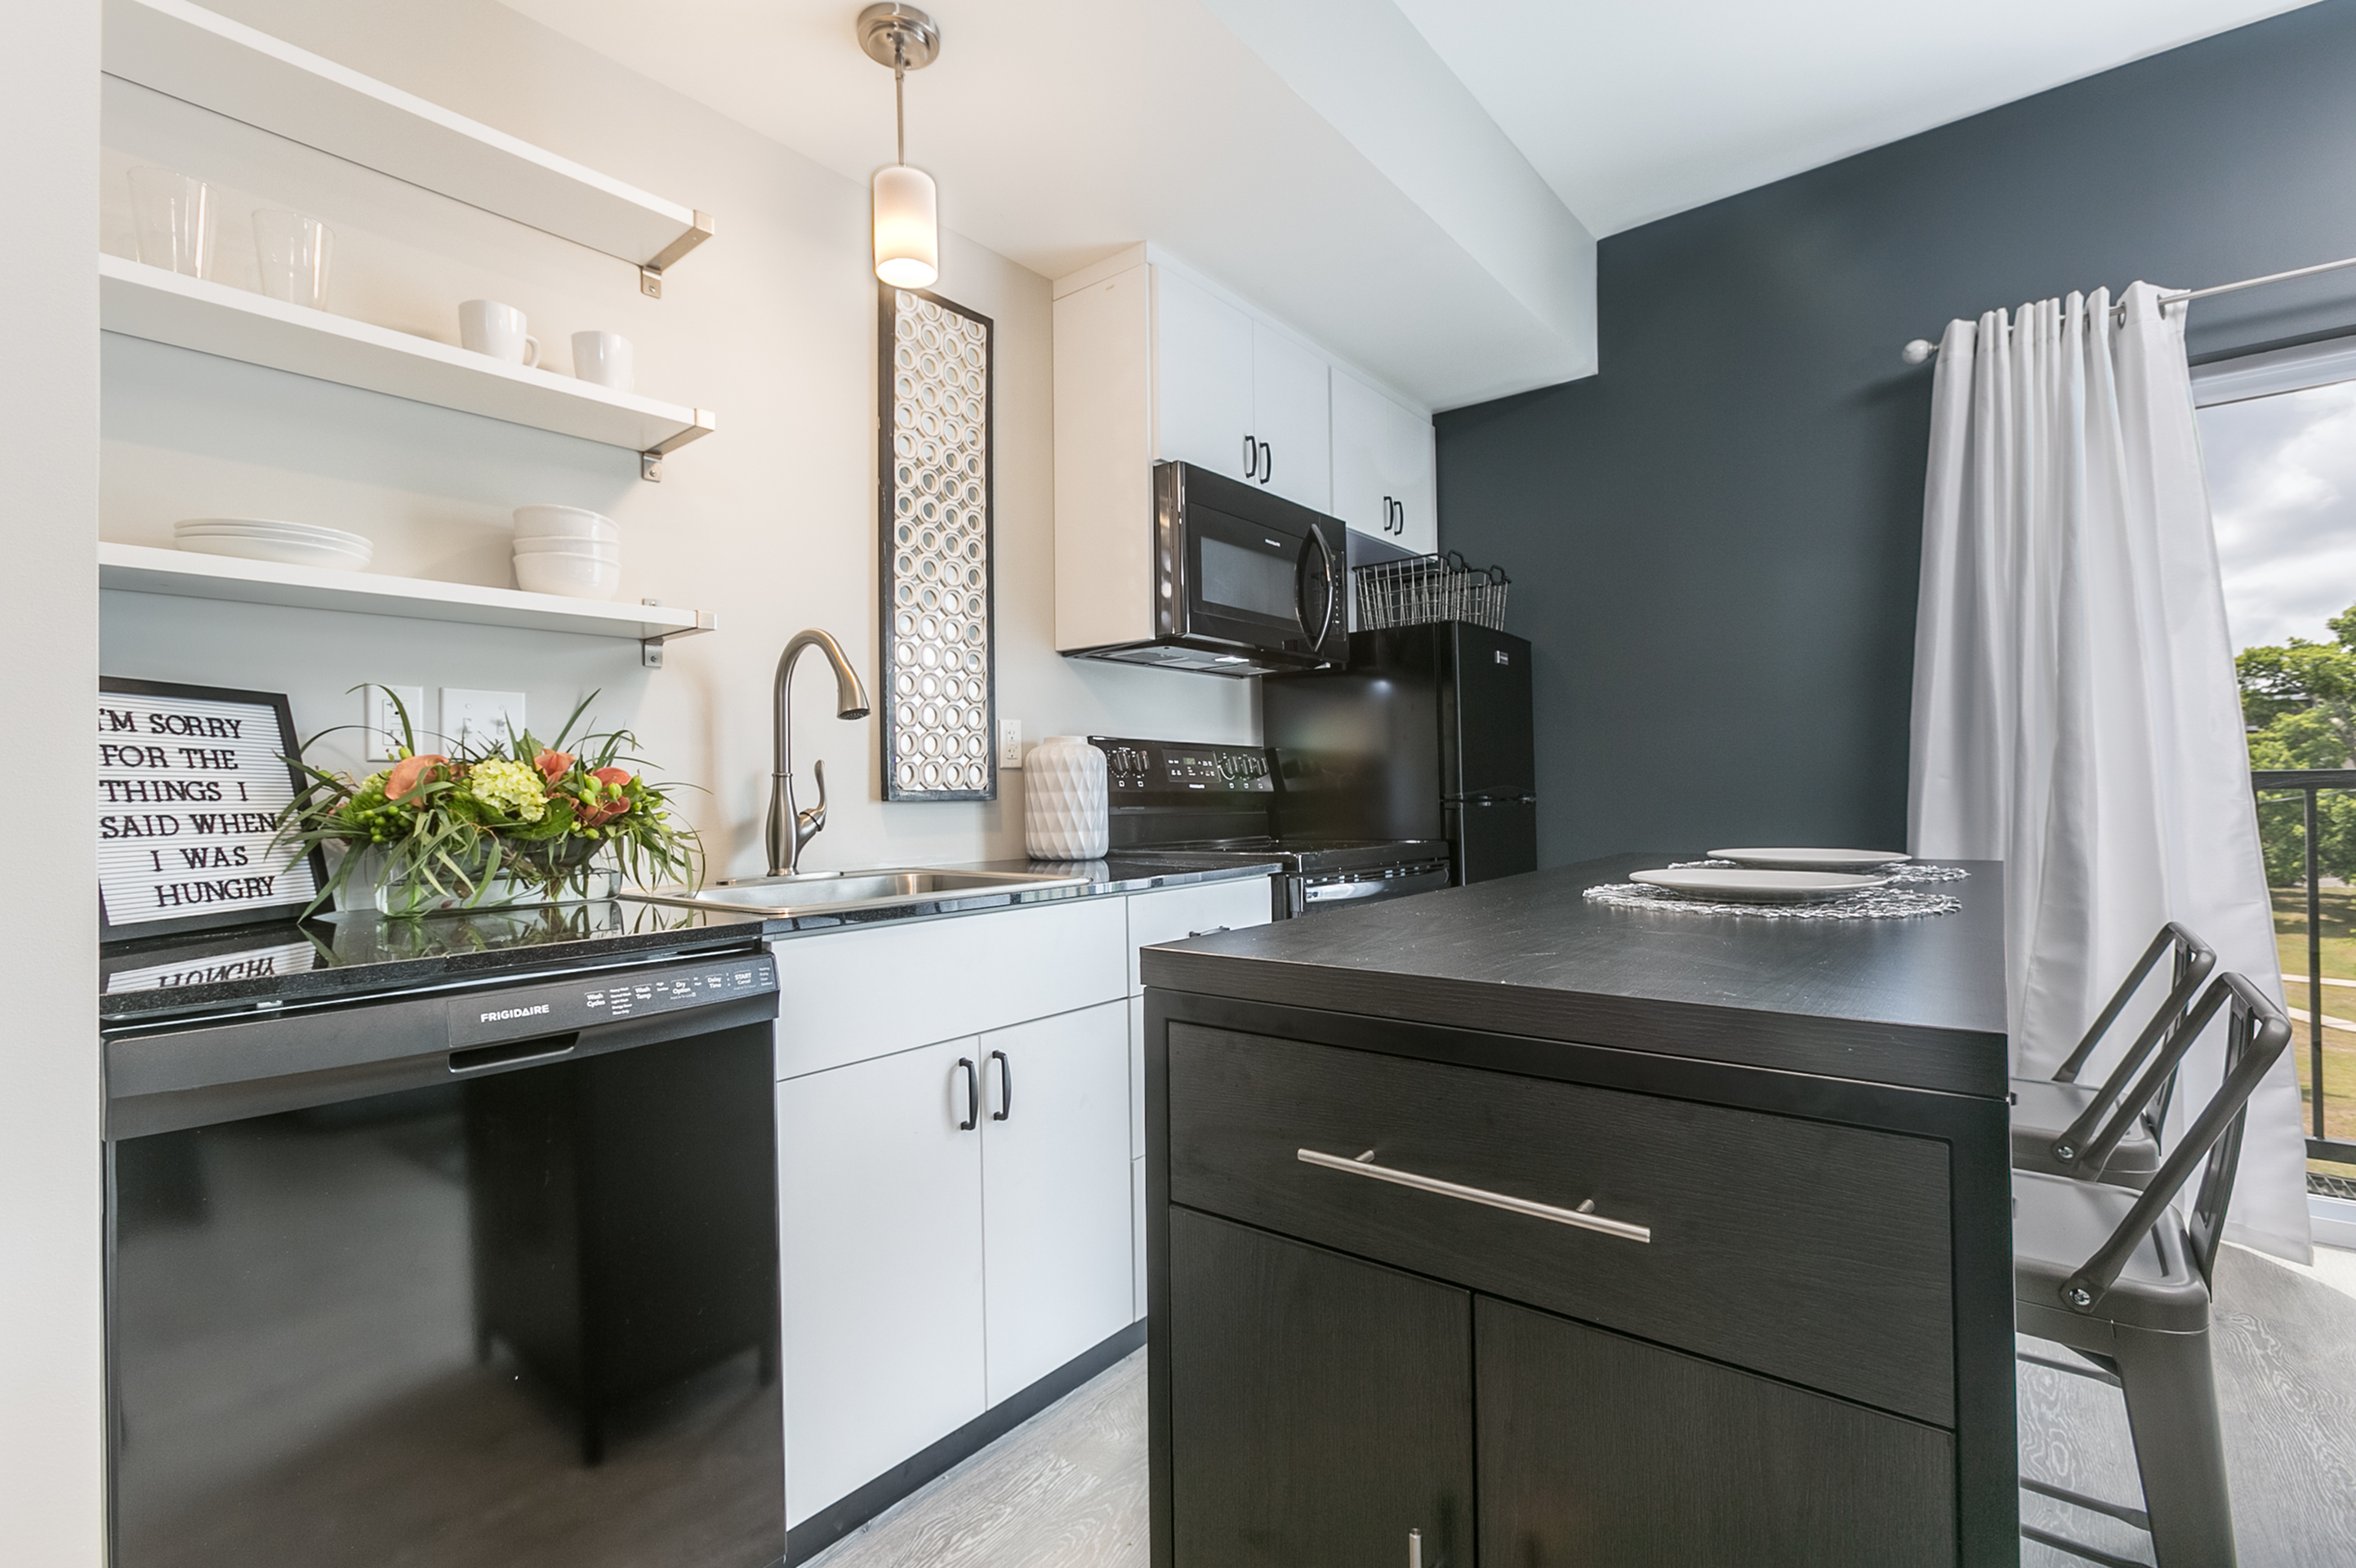 kitchen with white cabinets, black appliances and white floating shelves that holds dishes